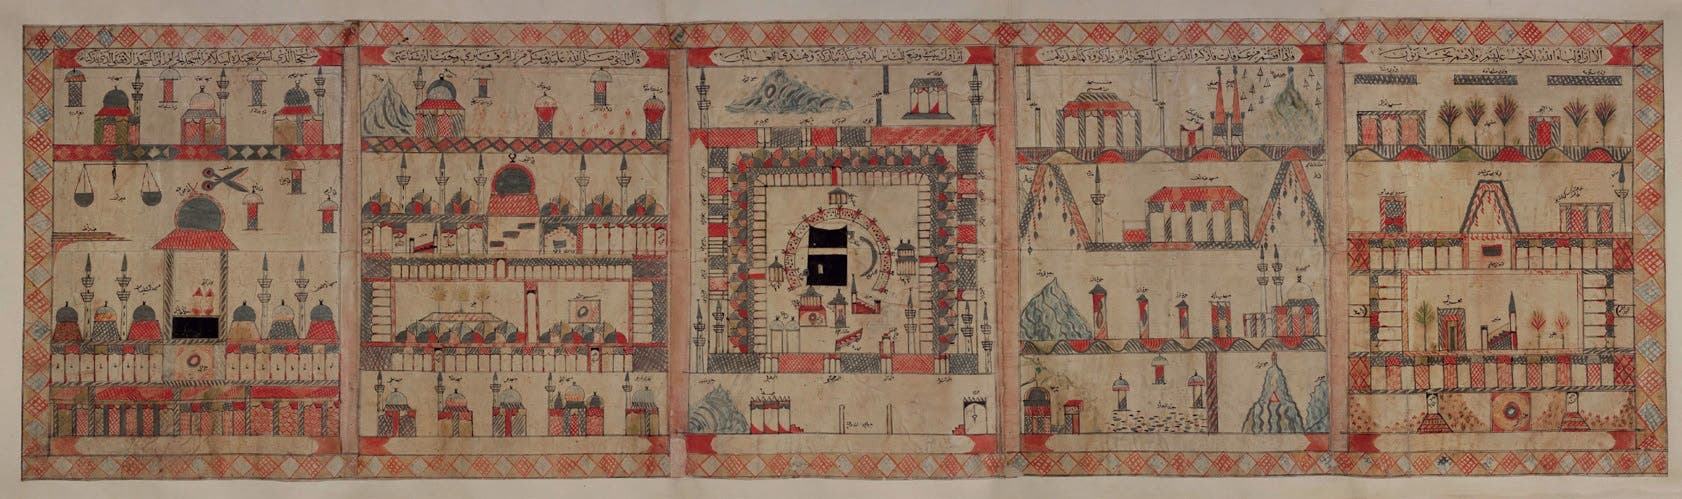 Pilgrimage scroll. About 1880 Hijaz, present day Saudi Arabia, Ink and watercolour on paper, backed on card and fabric. (Courtesy: Nasser D. Khalili Collection of Islamic Art)